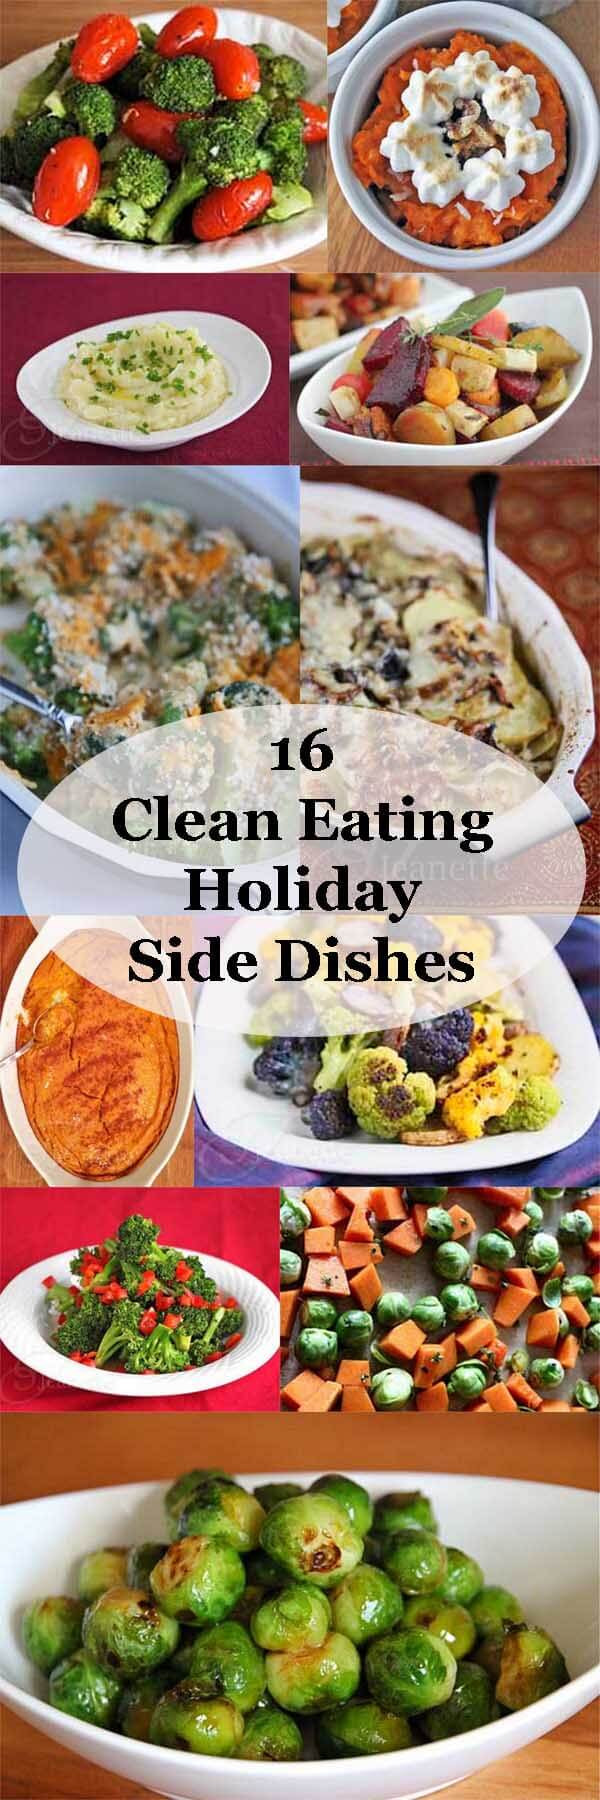 Healthy Christmas Side Dishes  16 Clean Eating Holiday Side Dish Recipes Jeanette s